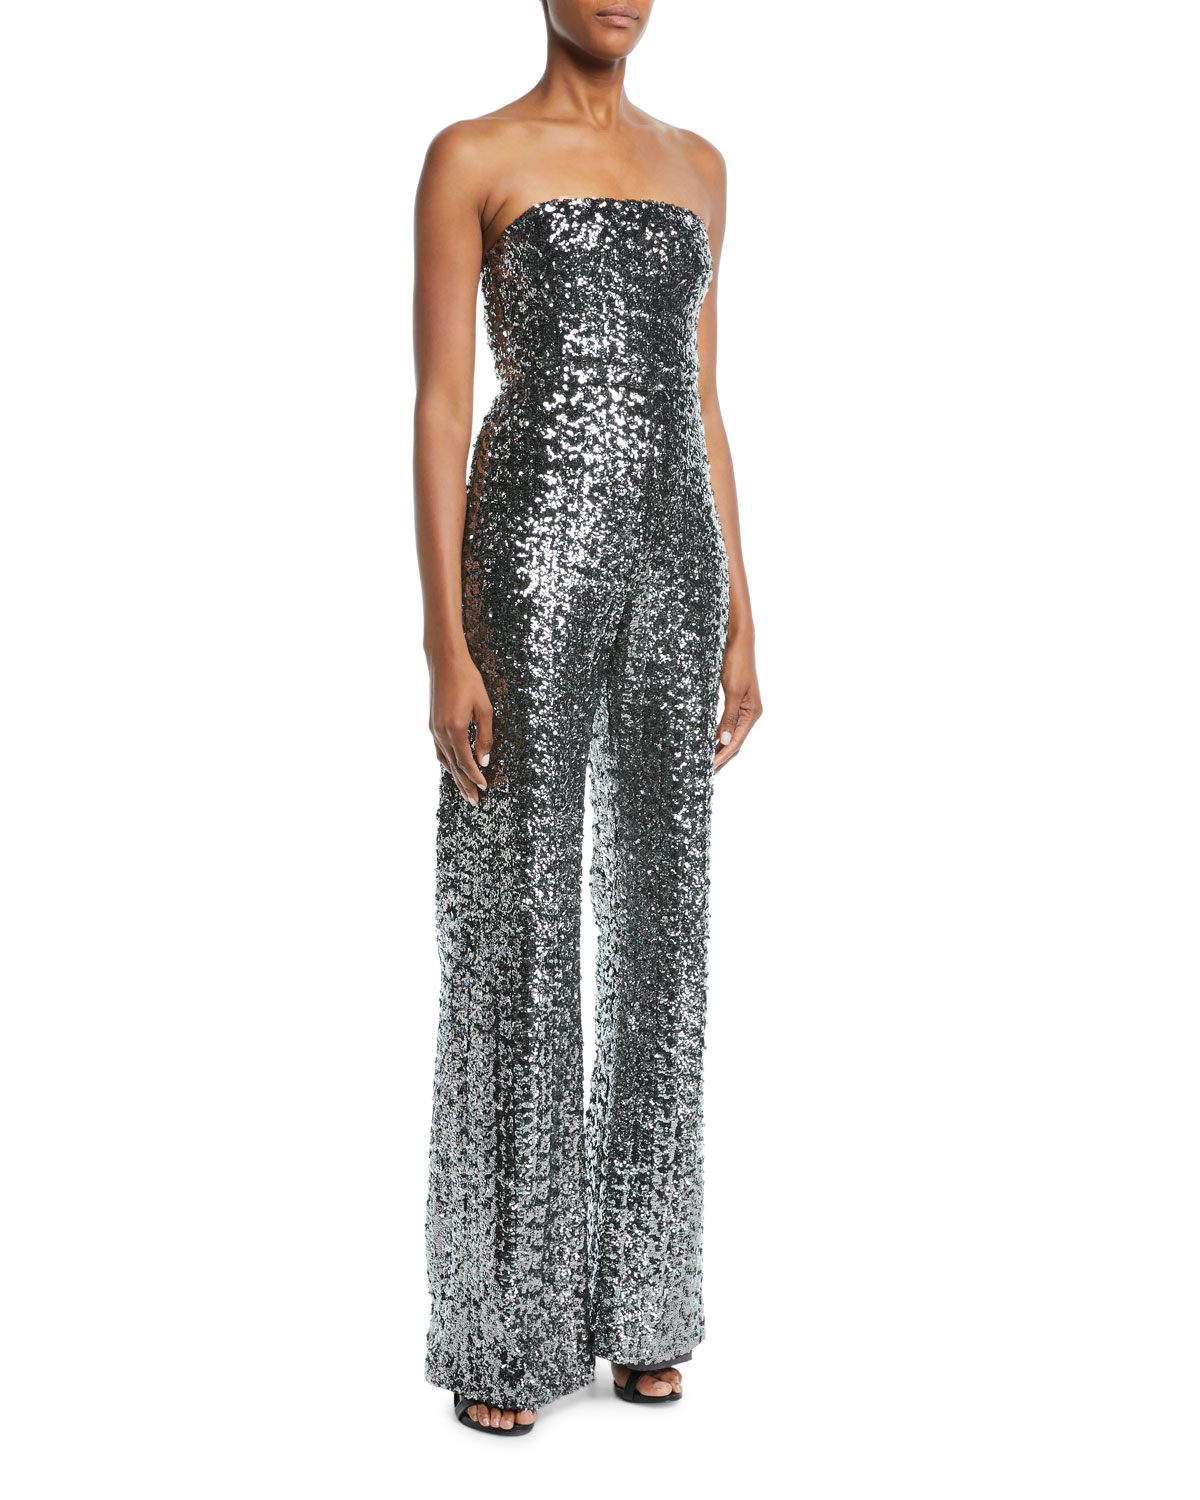 Carleen Sequin Strapless Wide-Leg Jumpsuit, Gray Metallic